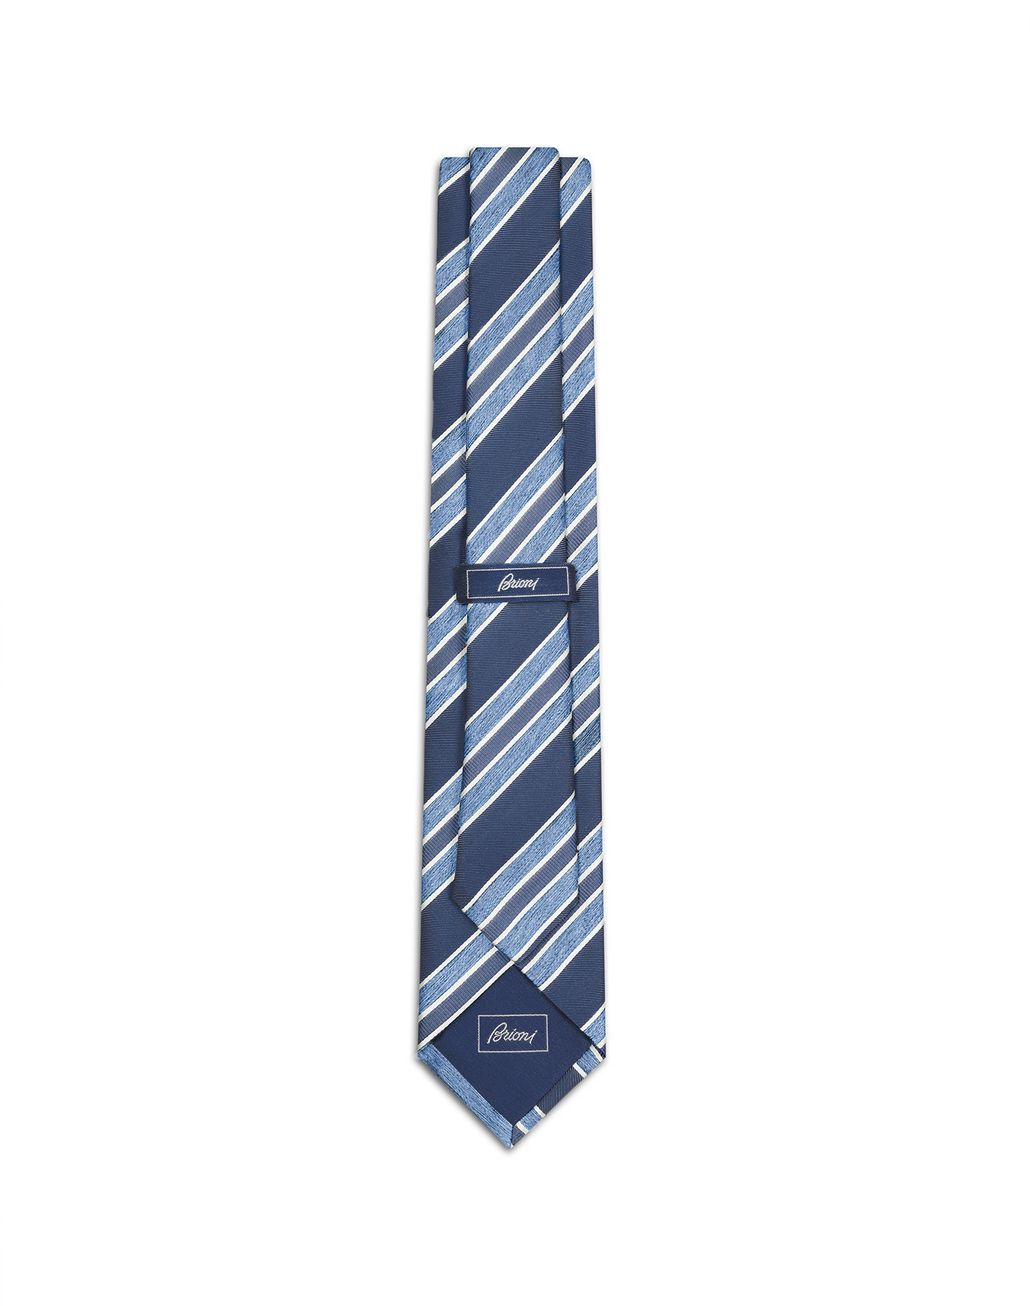 BRIONI Navy-Blue and Sky-Blue Regimental Tie Tie U r